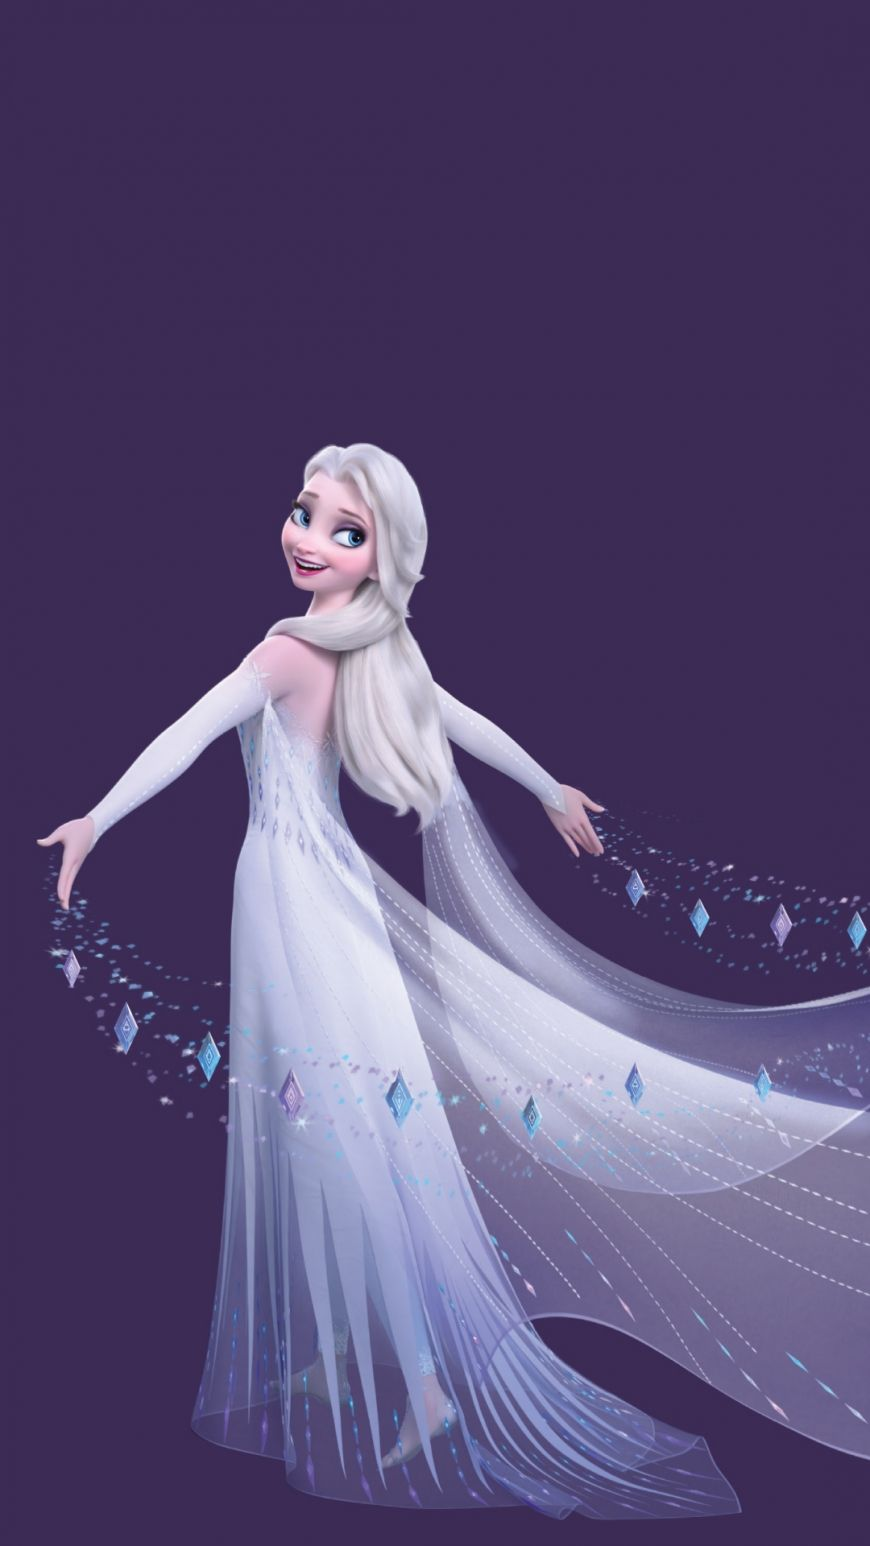 Frozen 2 Elsa Fifth Element Hd Image Disney Princess Frozen Disney Princess Elsa Frozen Disney Movie